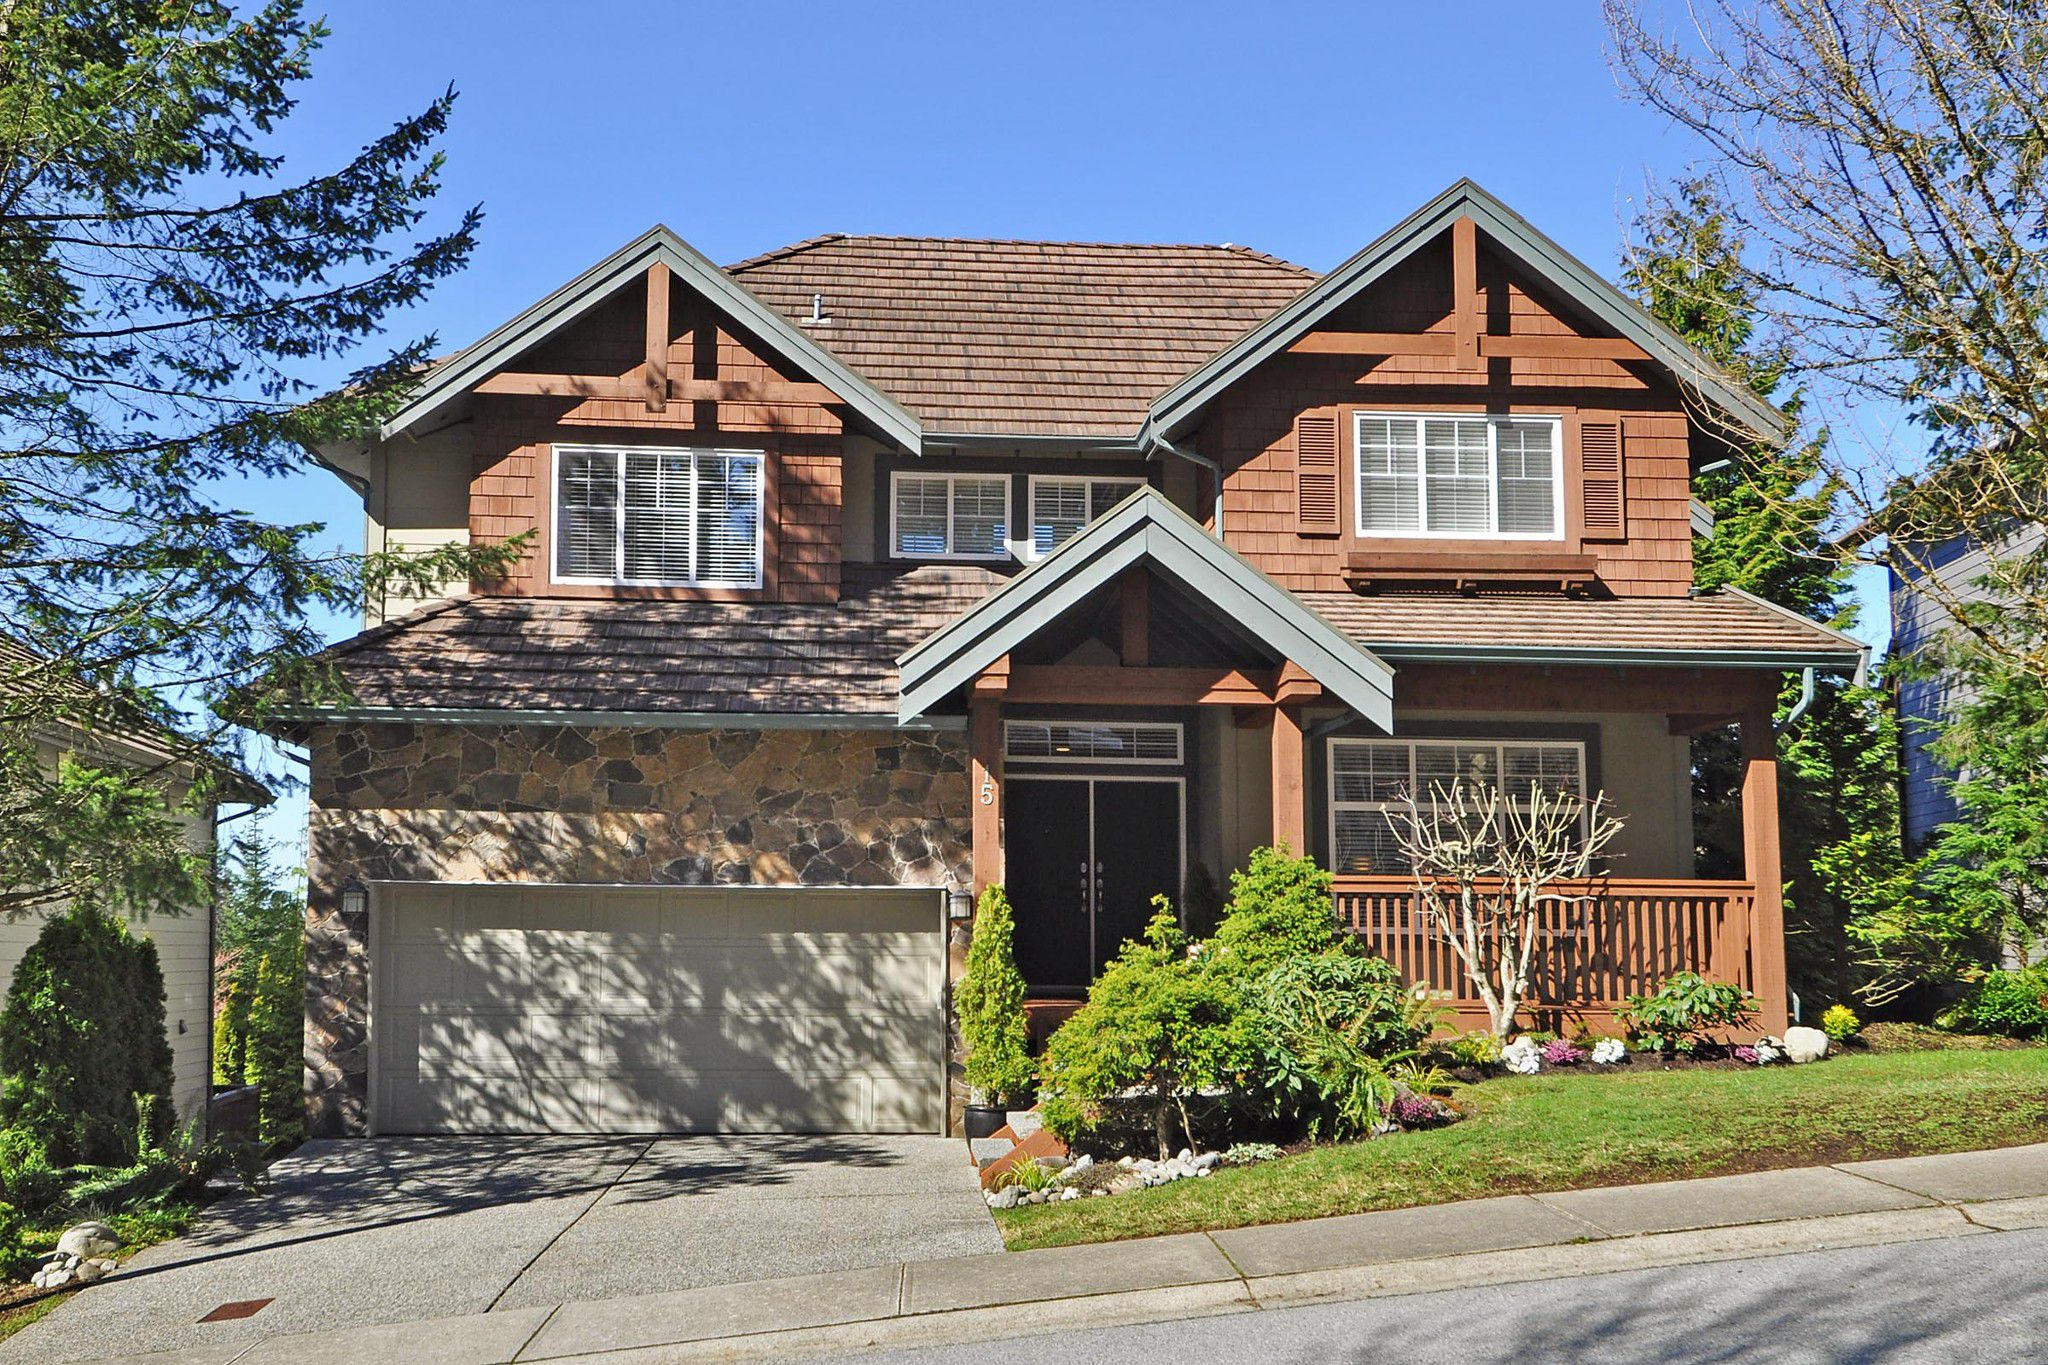 """Main Photo: 15 ASHWOOD Drive in Port Moody: Heritage Woods PM House for sale in """"Heritage Woods"""" : MLS®# R2353731"""